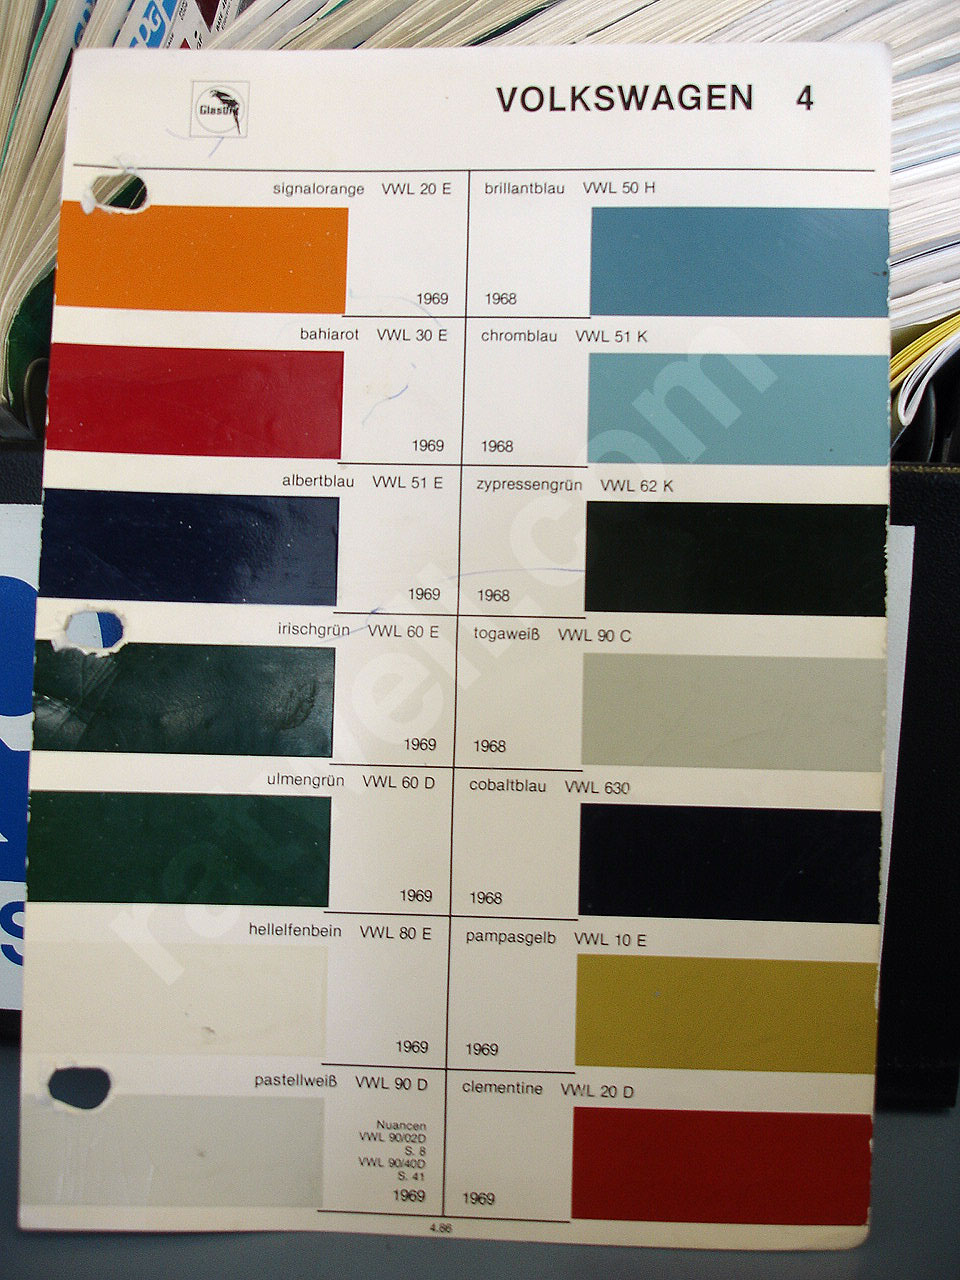 Reference 15 1971 Volkswagen Colors